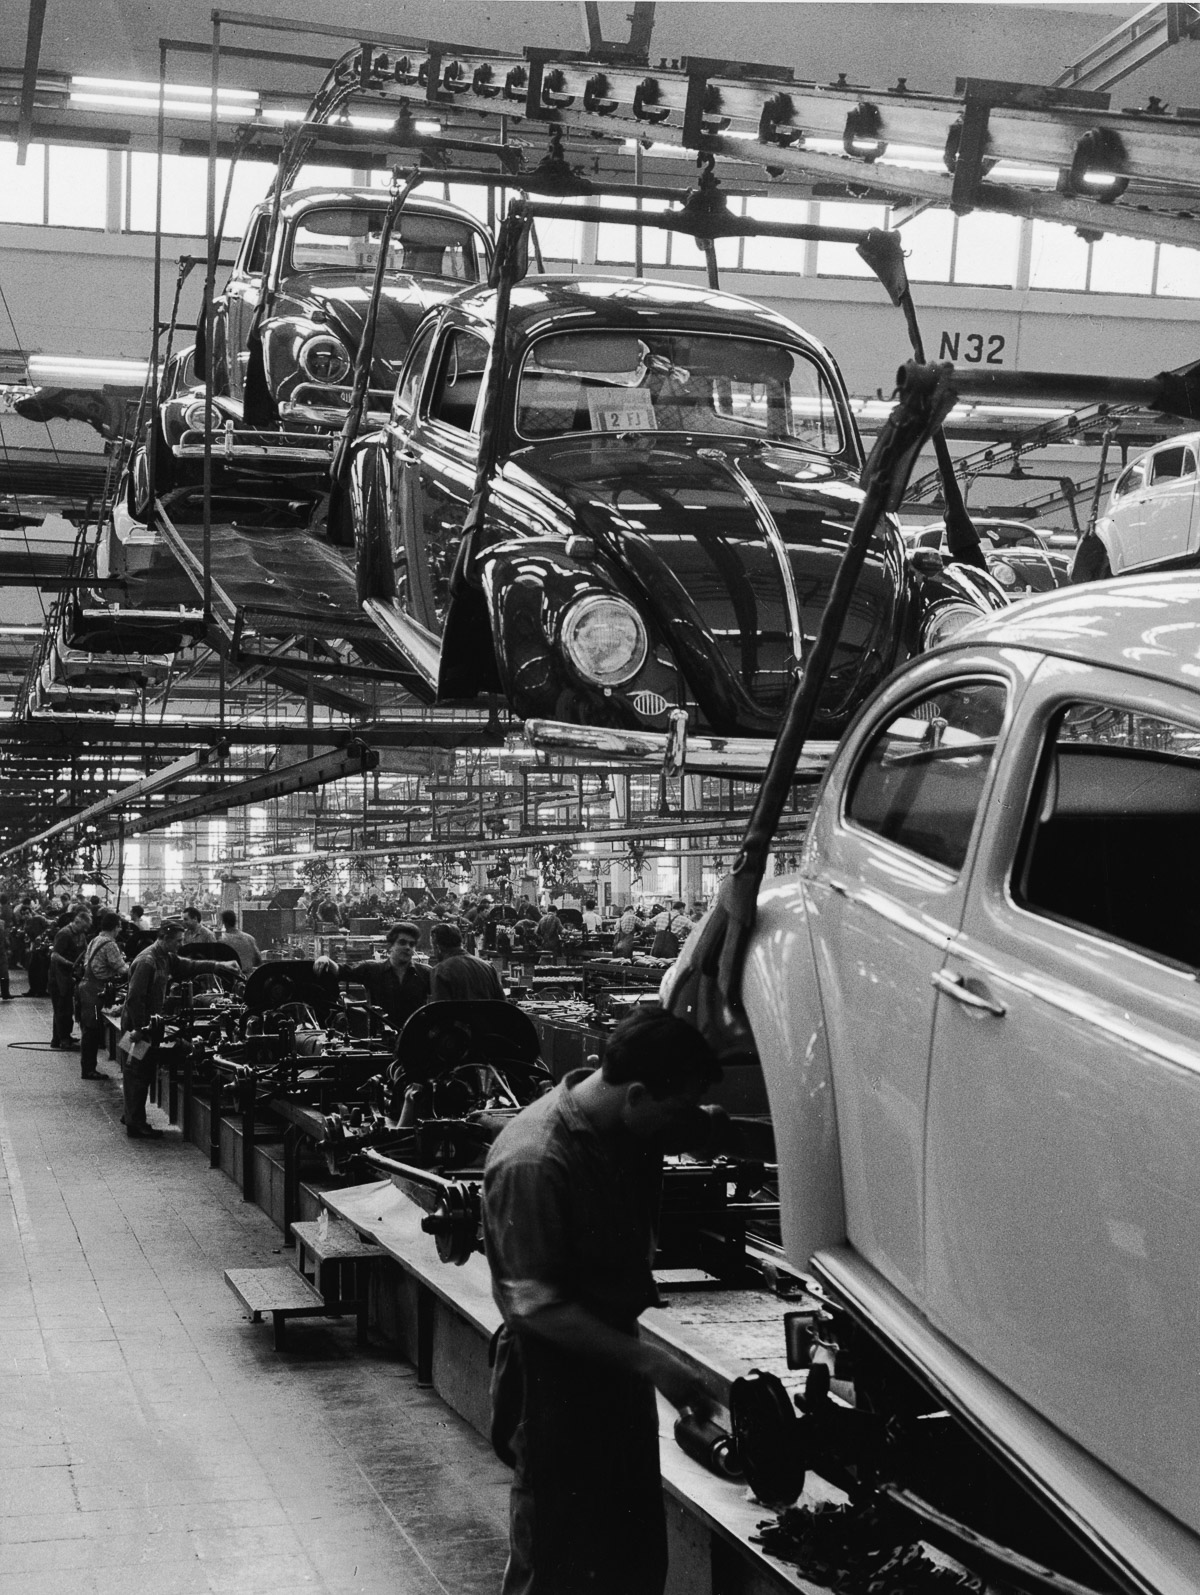 Employees at a Volkswagen plant work on an assembly line to complete Volkswagen 1200 Sedans, better known as Beetles, Wolfsburg, Germany, 1960s. In the foreground, a man guides a car's body as it is lowered onto the chassis. (Photo by Pictorial Parade/Getty Images)